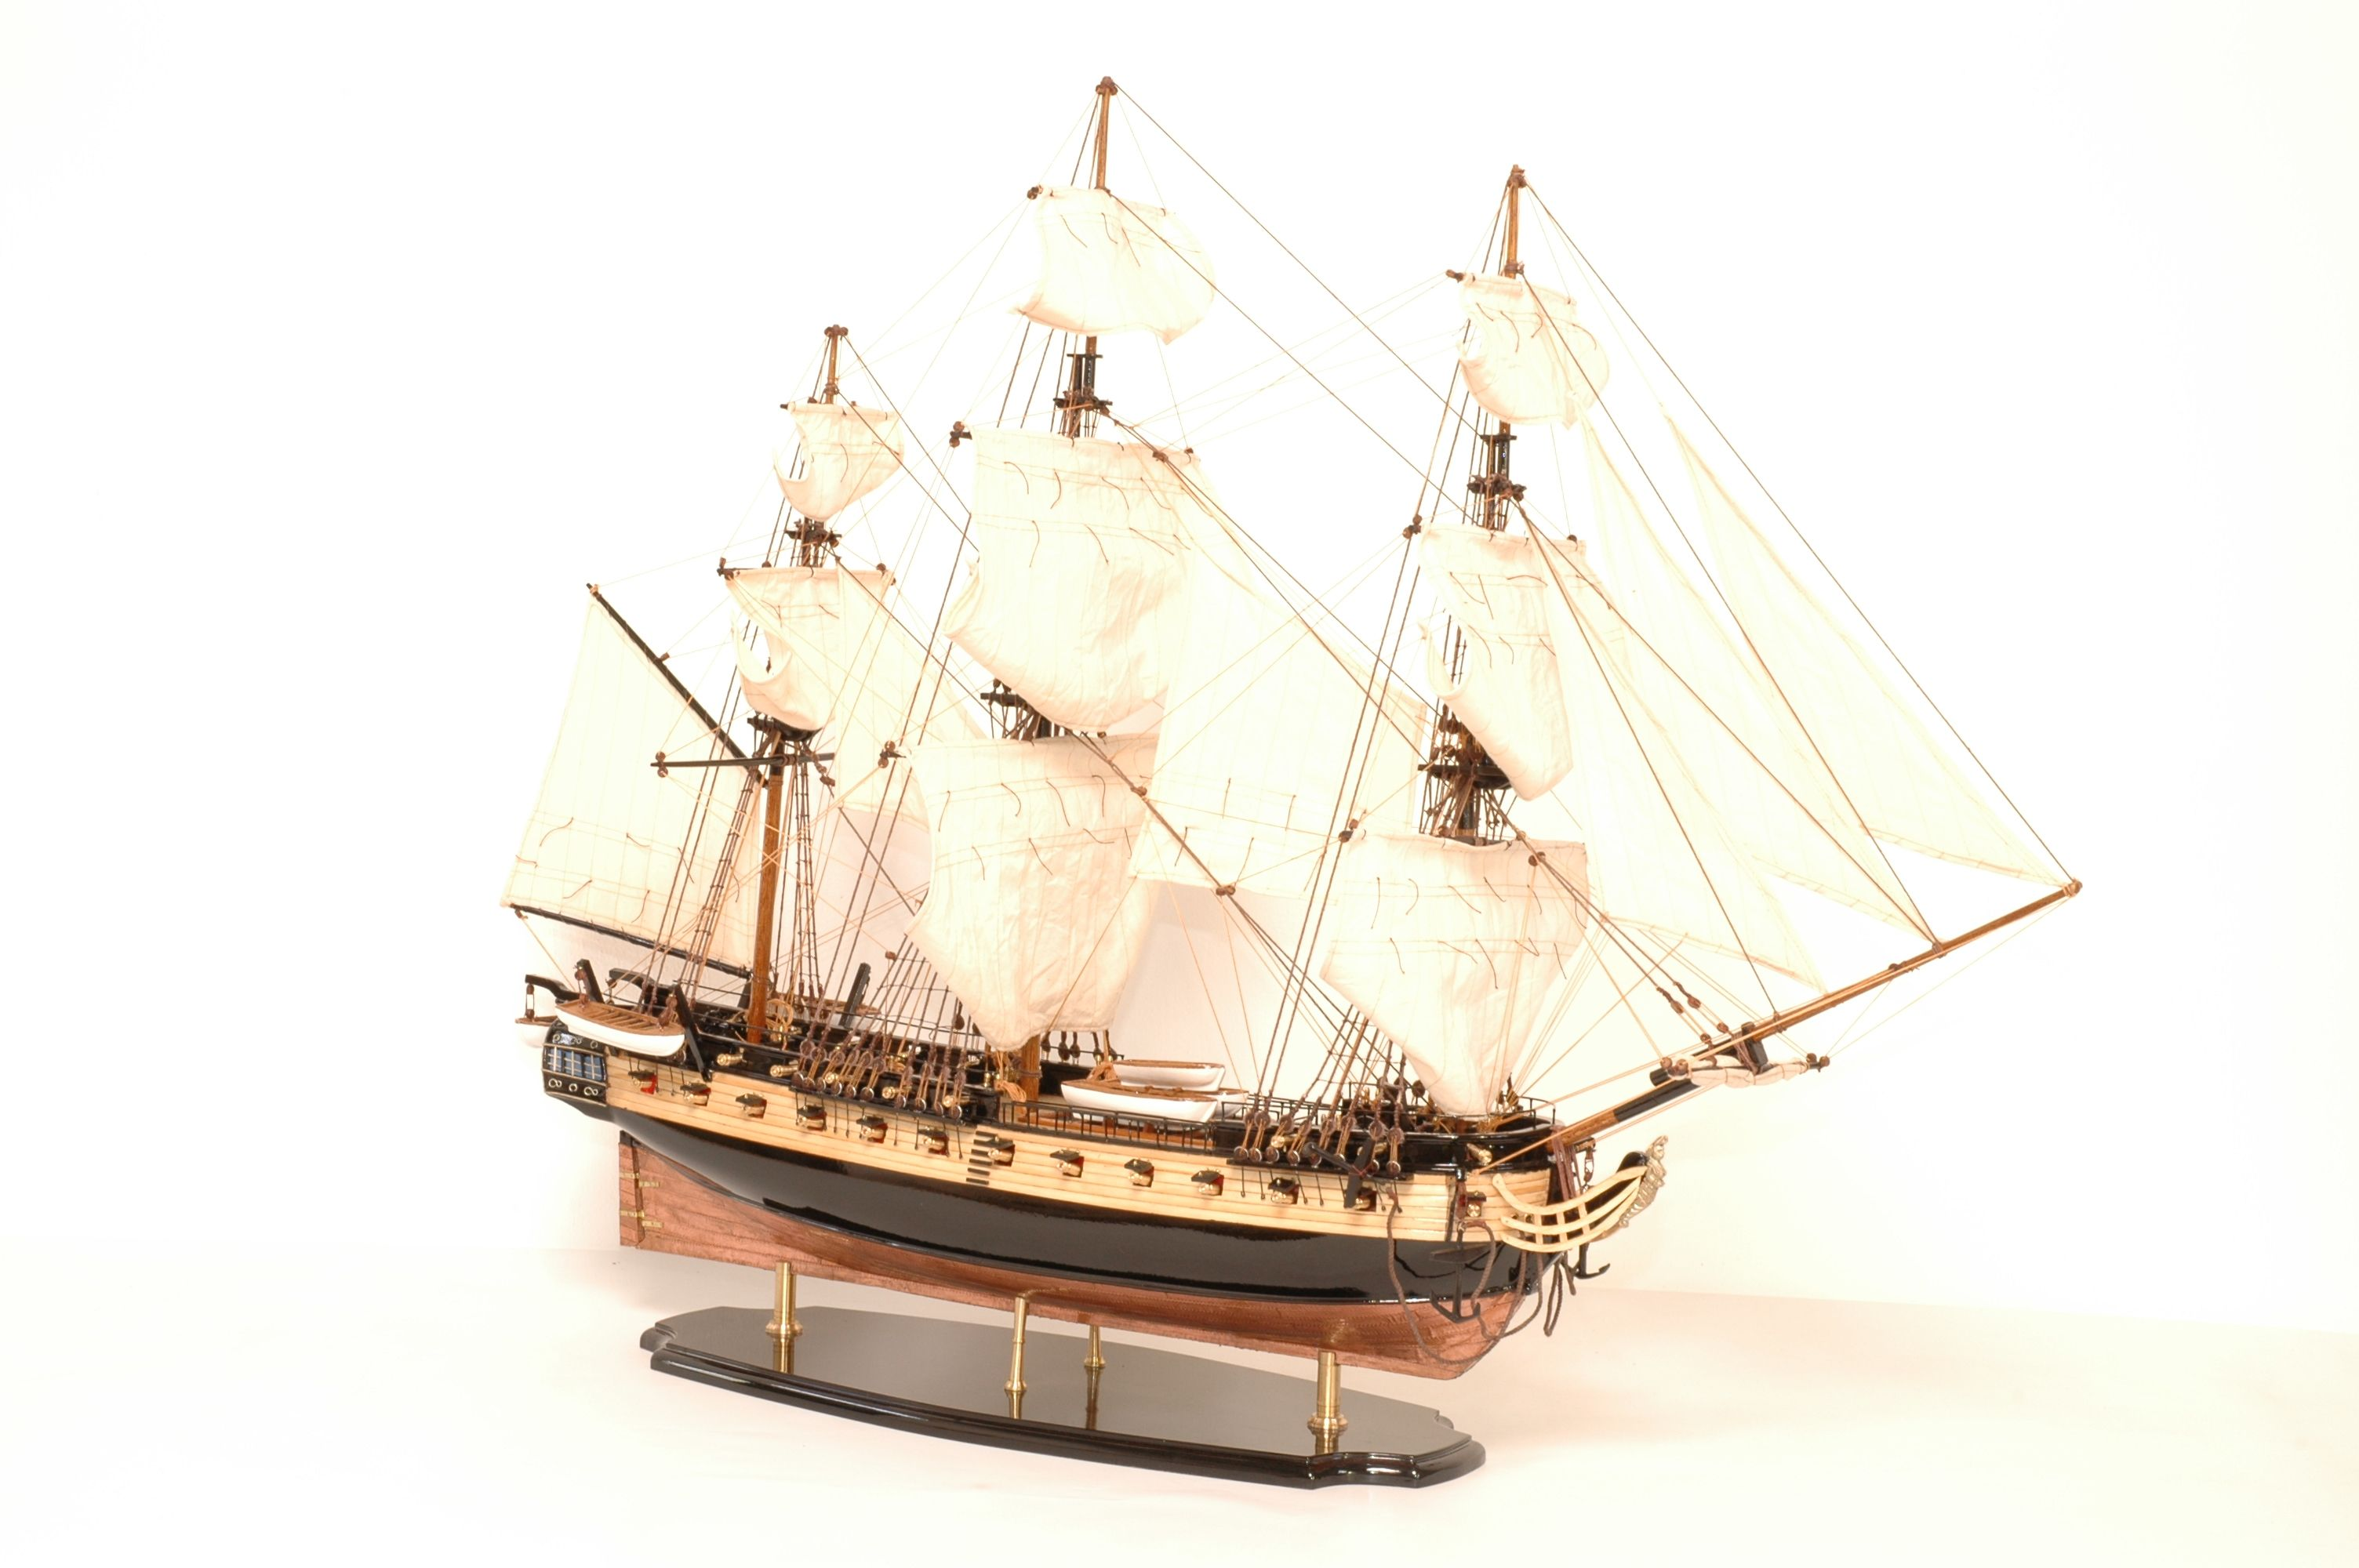 488-8342-HMS-Surprise-Model-Ship-Superior-Range